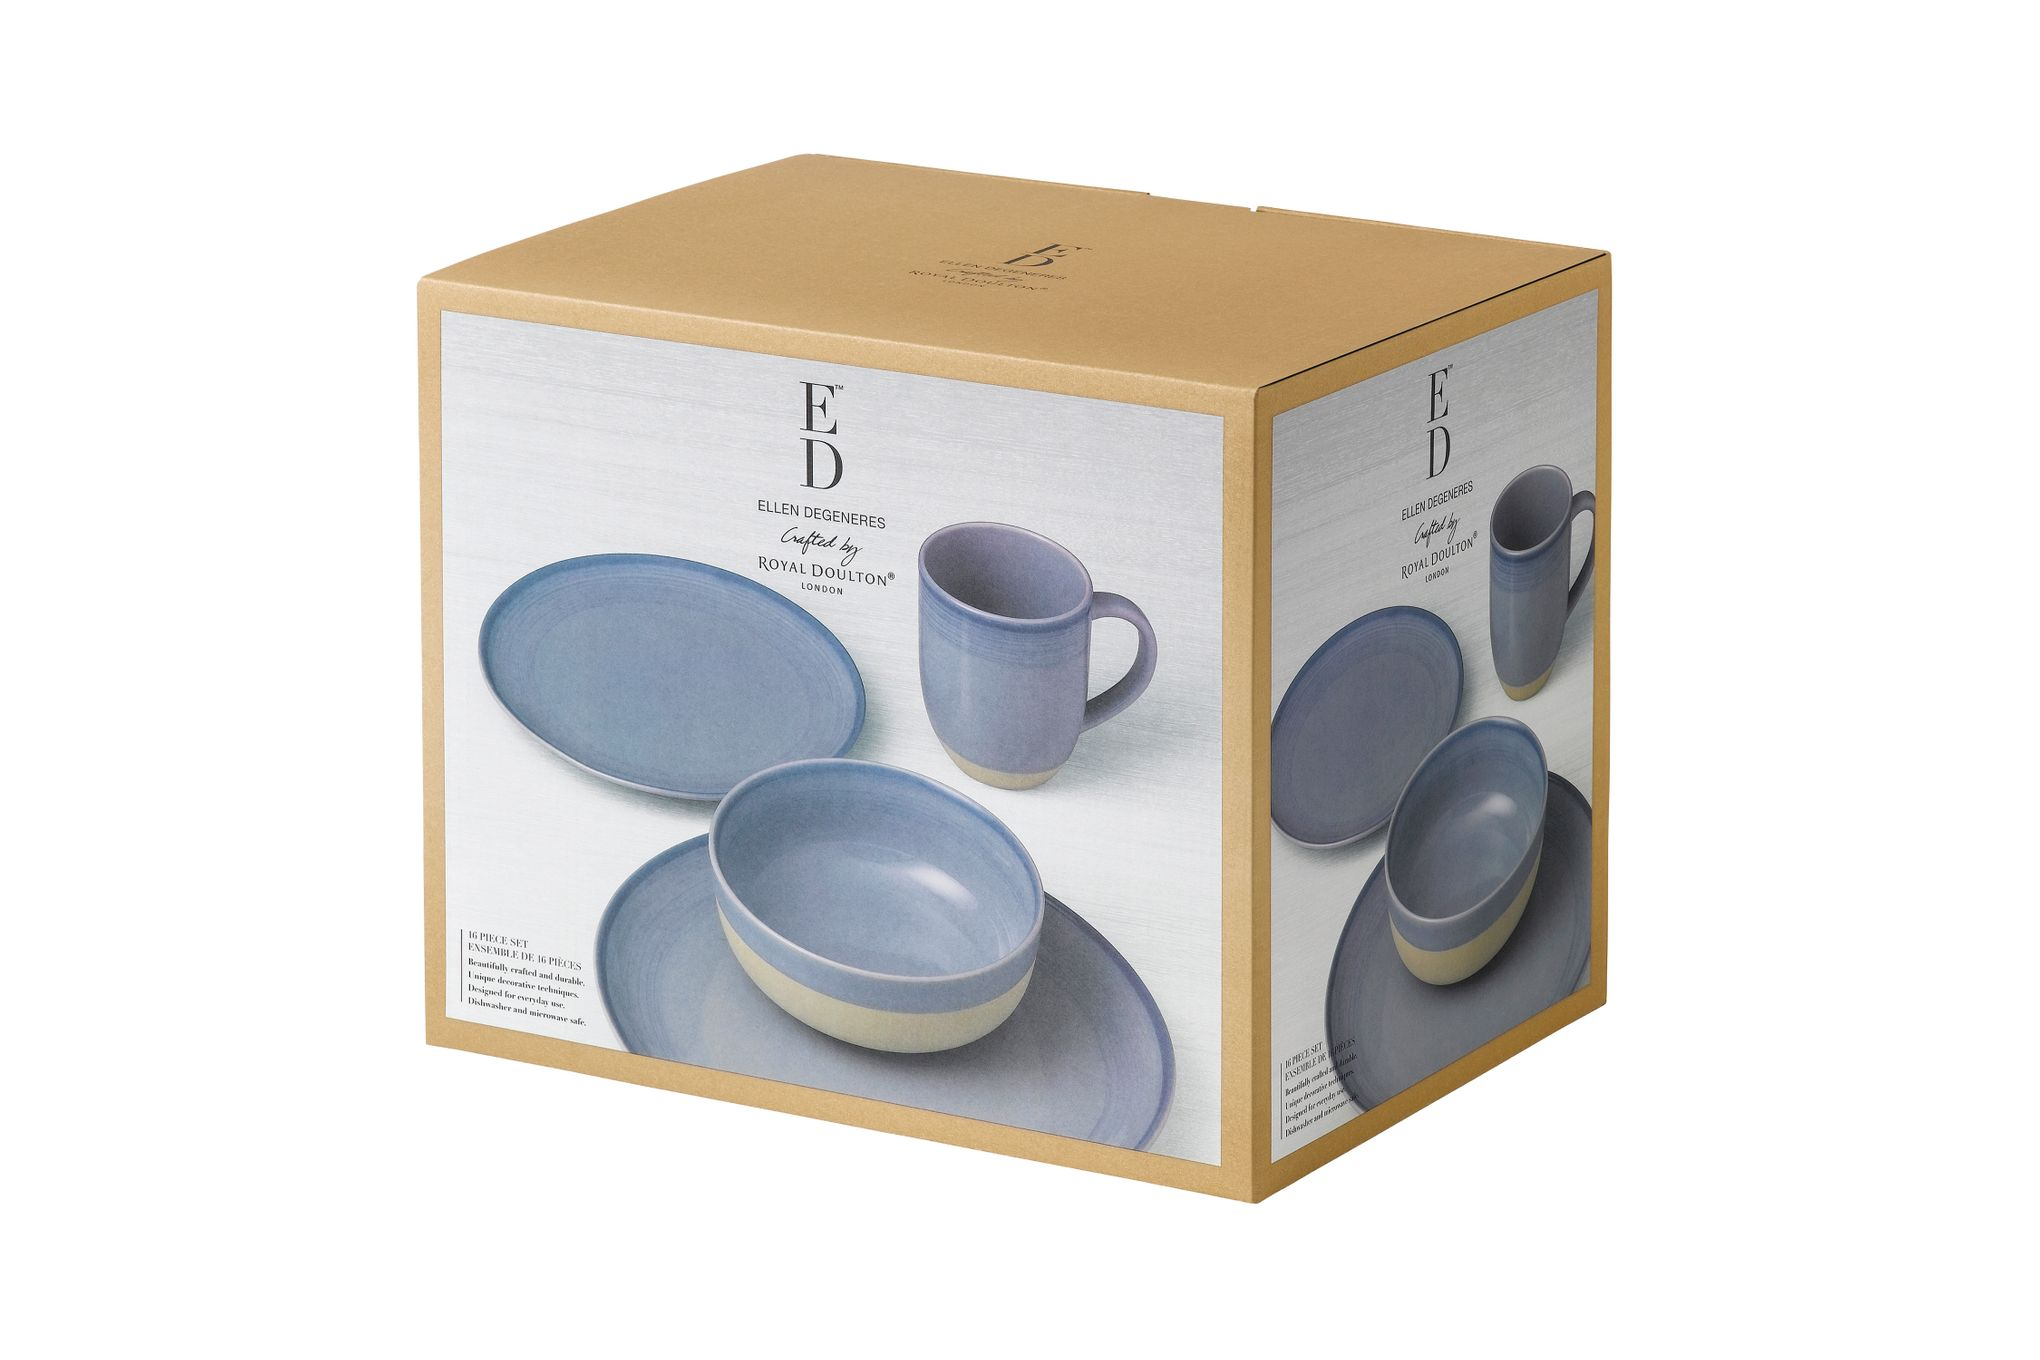 Ellen DeGeneres for Royal Doulton Brushed Glaze Sets 16 Piece Set Polar Blue thumb 2